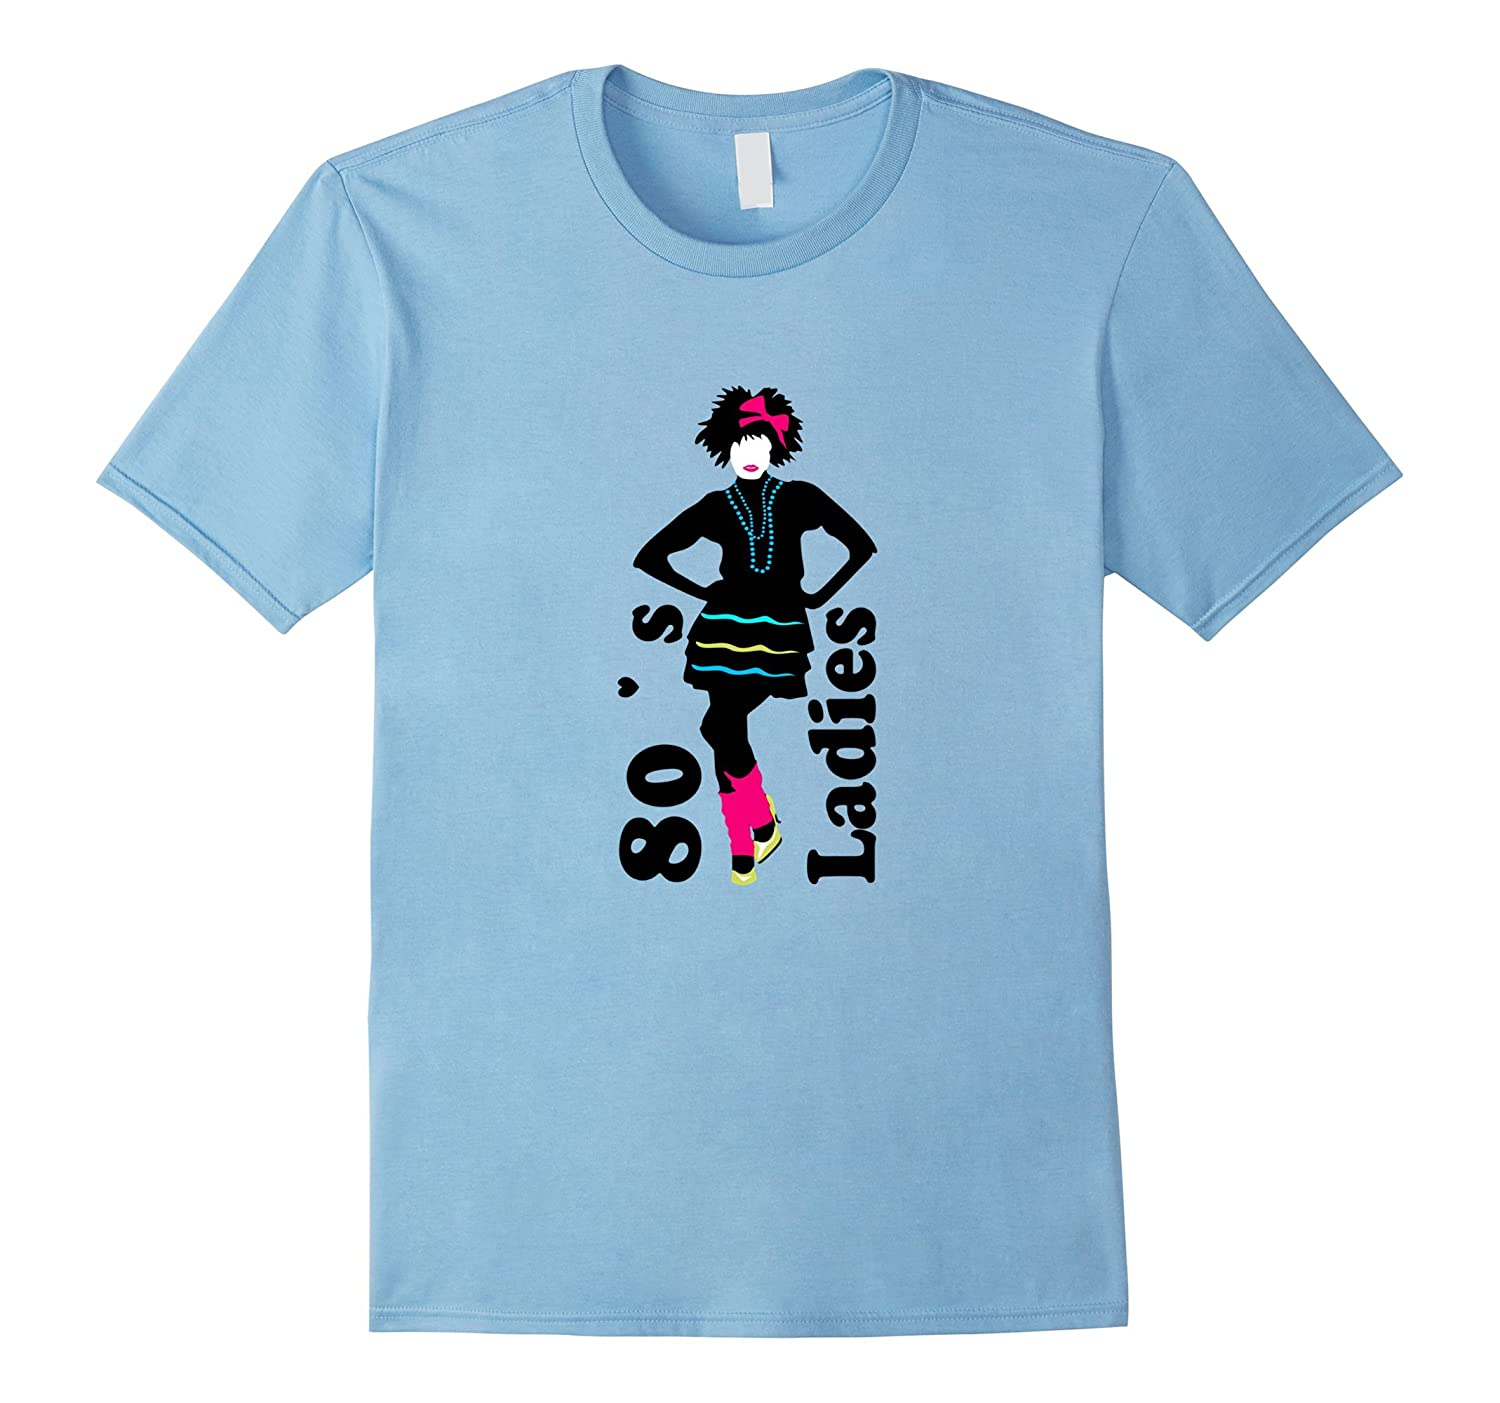 80's Ladies T- Shirt 1980s Retro Women's Clothing & Apparel-Art